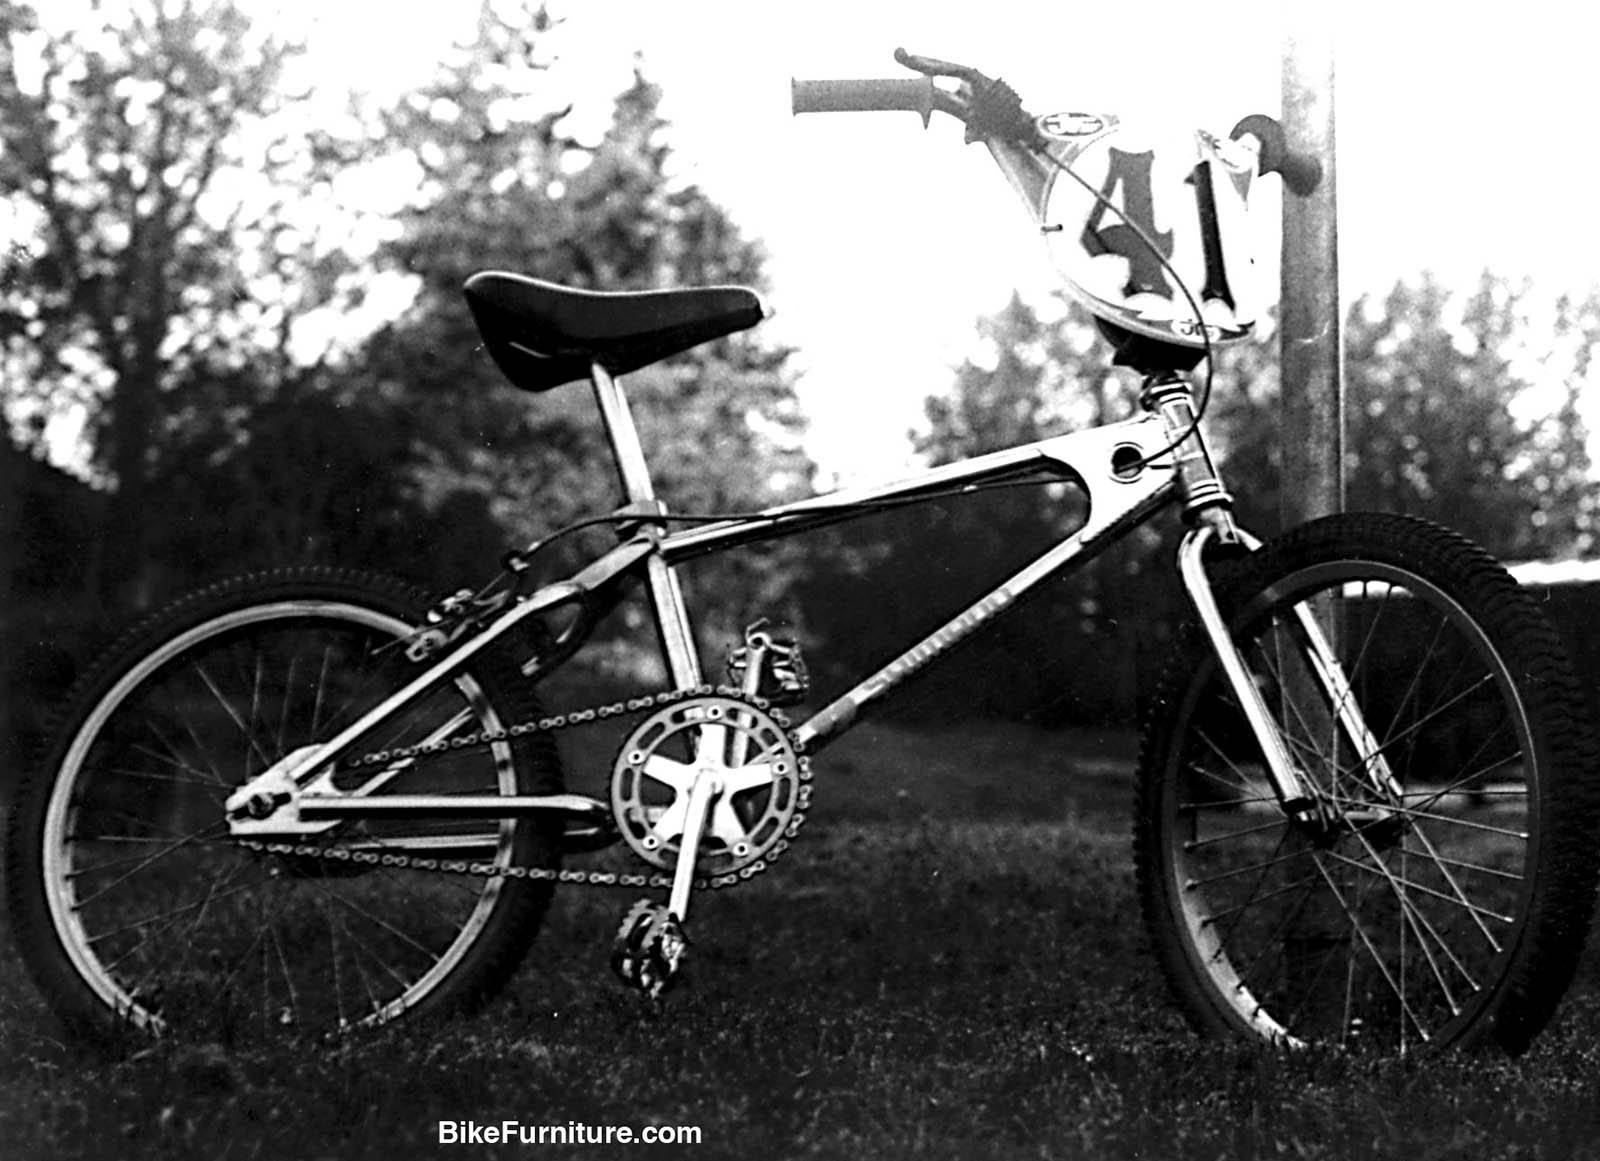 I bought my first BMX bike, this Mongoose Supergoose, with money saved from my paper route.  I also bought my first camera around the same time, and bikes and cameras have been with me constantly ever since.